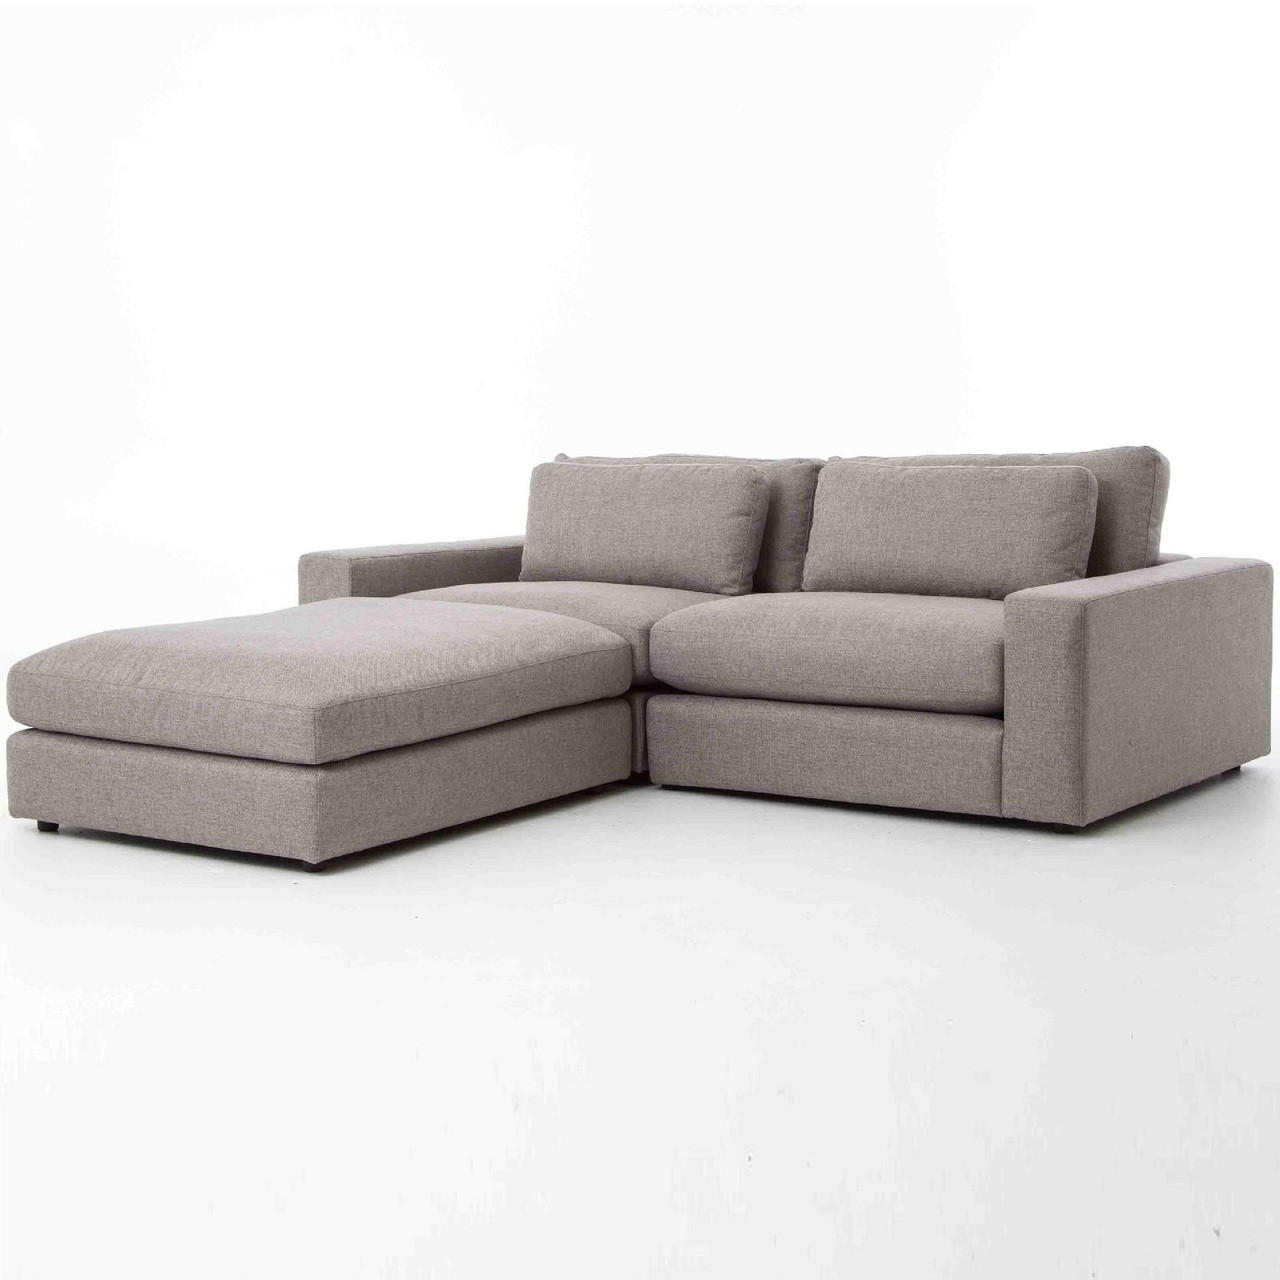 Bloor gray contemporary 3 piece small sectional sofa zin for 3 piece small sectional sofa